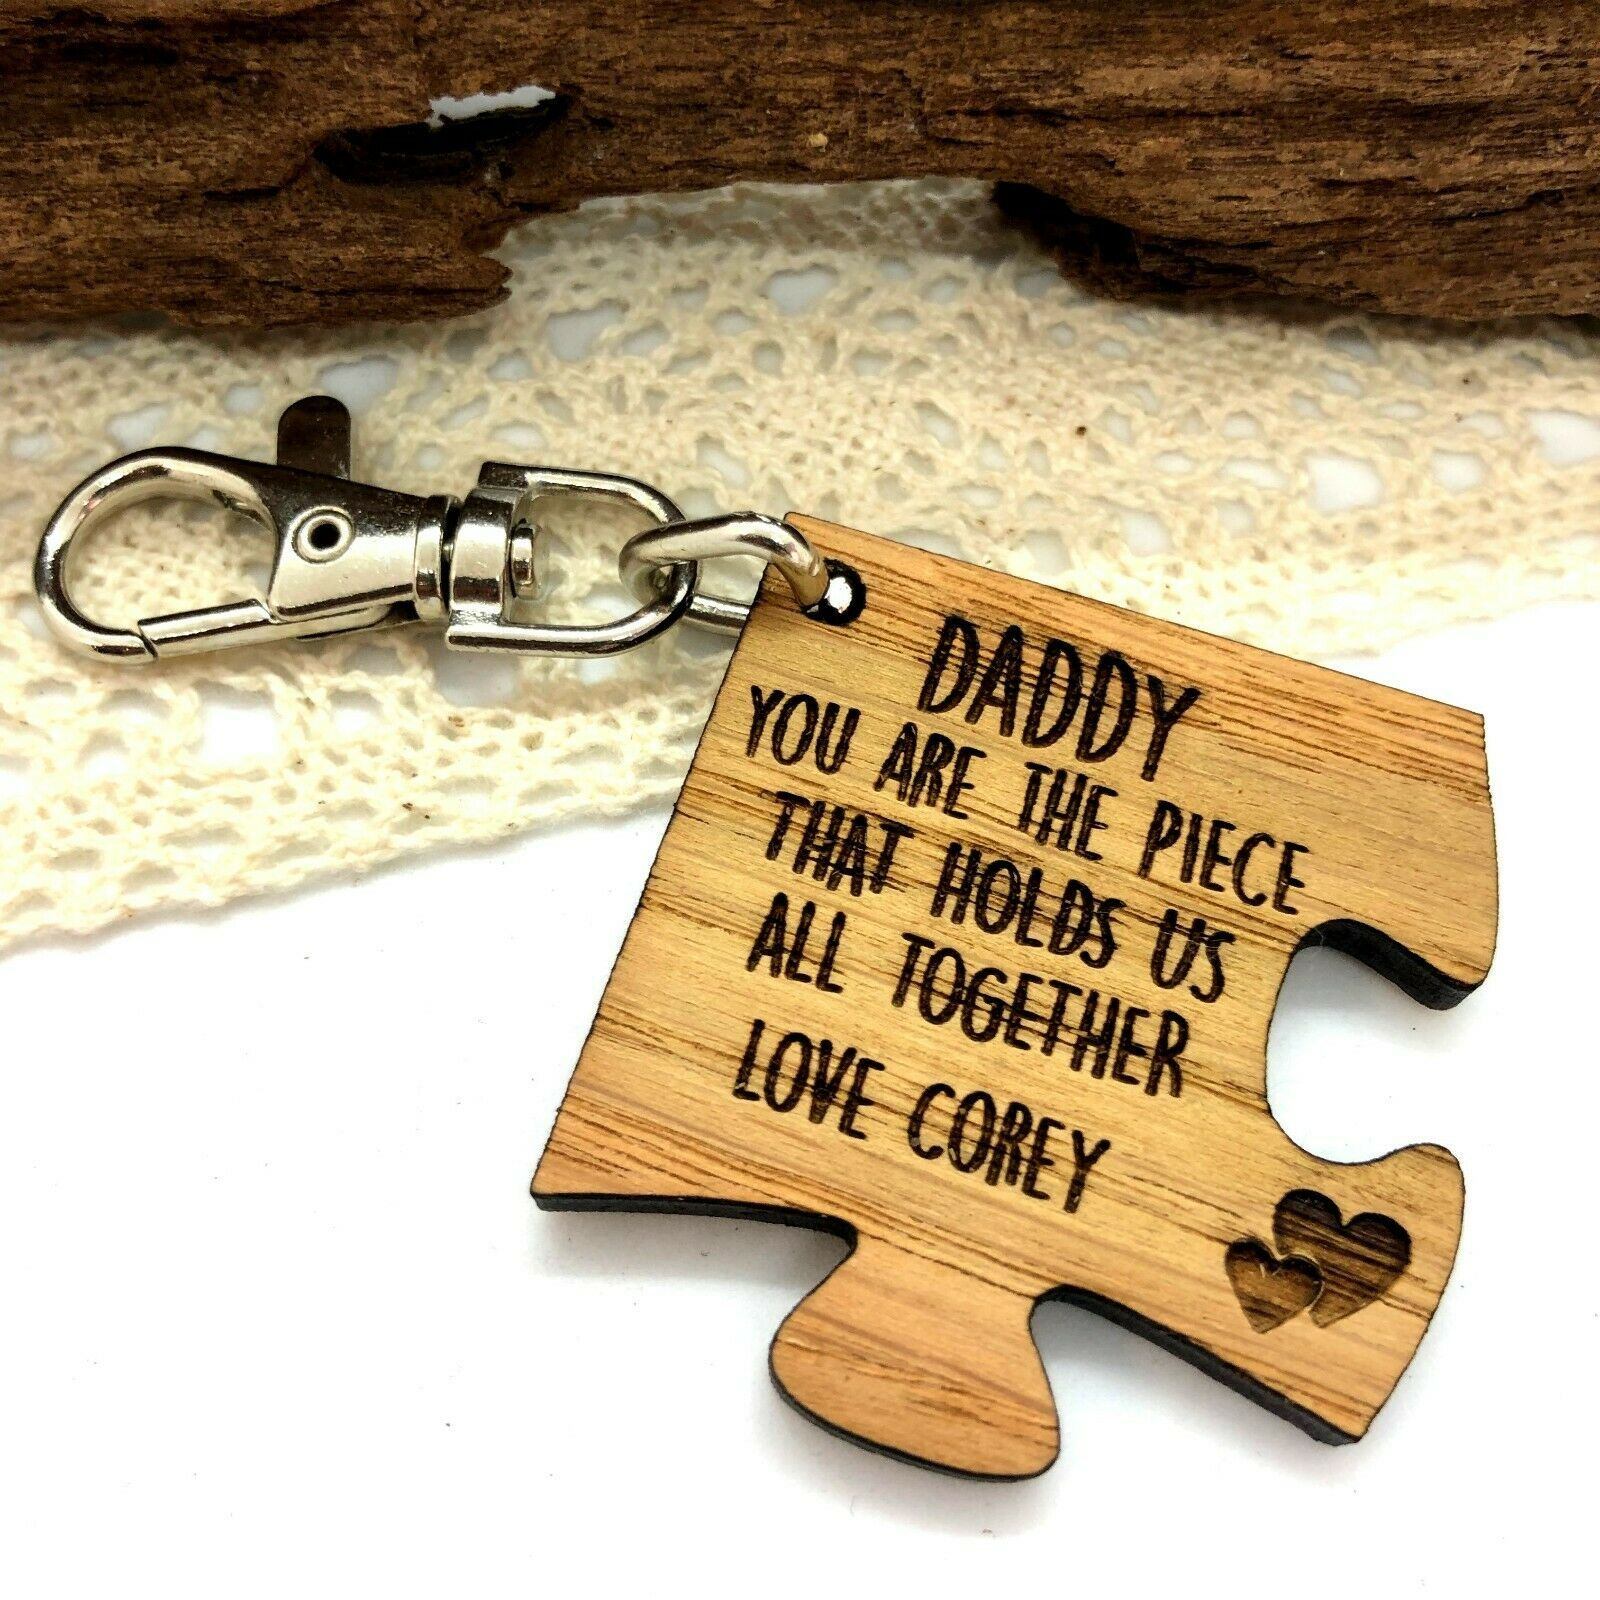 Little Gifts With Love - Personalised Wooden Mummy, You Are The Piece That Hold Us Together Keyring Gift